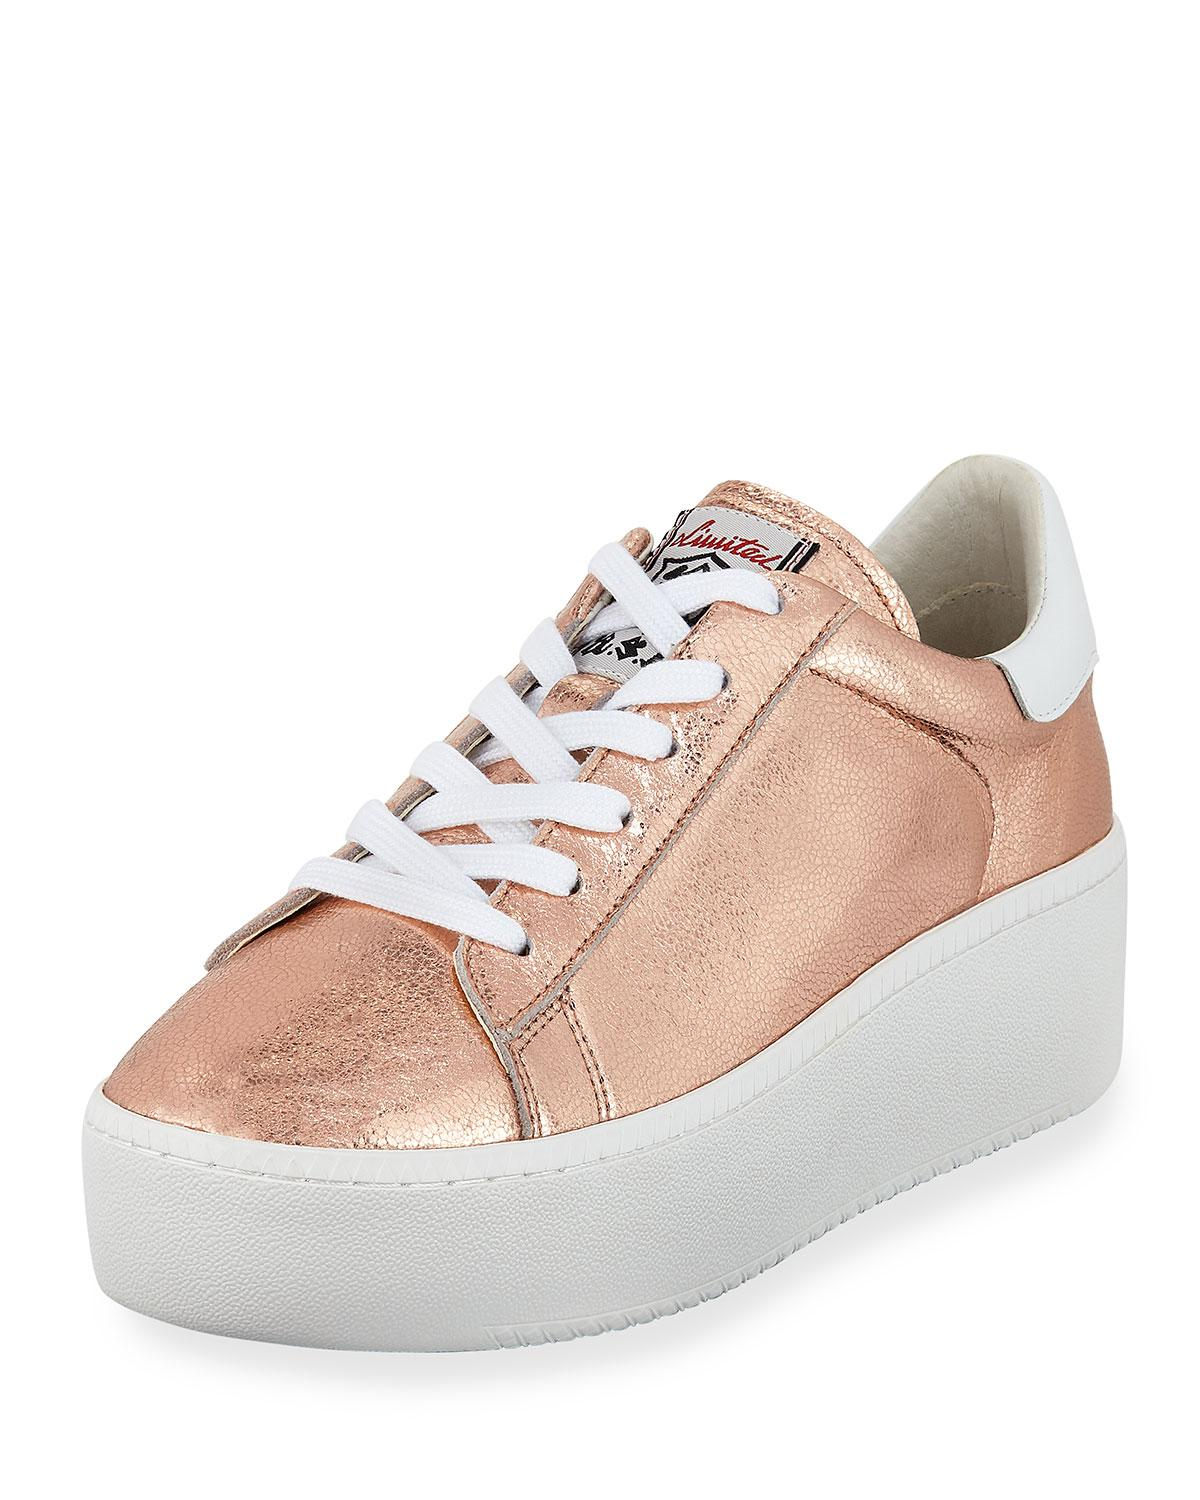 2058ba6c4edf9 Gallery. Previously sold at  Last Call · Women s Platform Sneakers